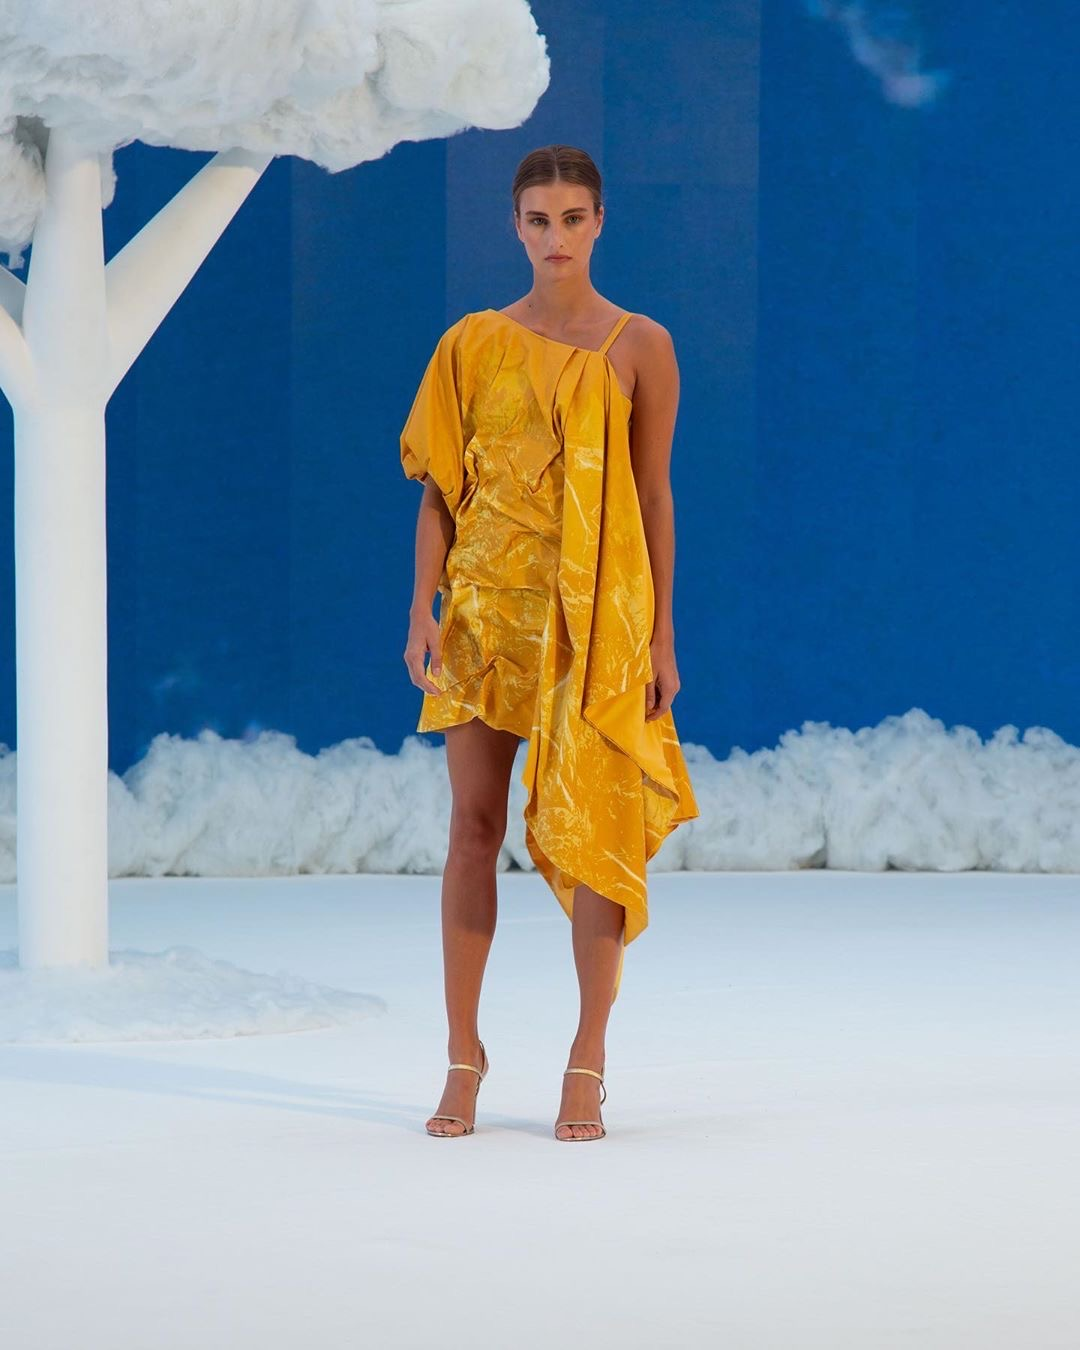 Yellow/Gold runway look by Nguyen from 2020 Supima Design Competition